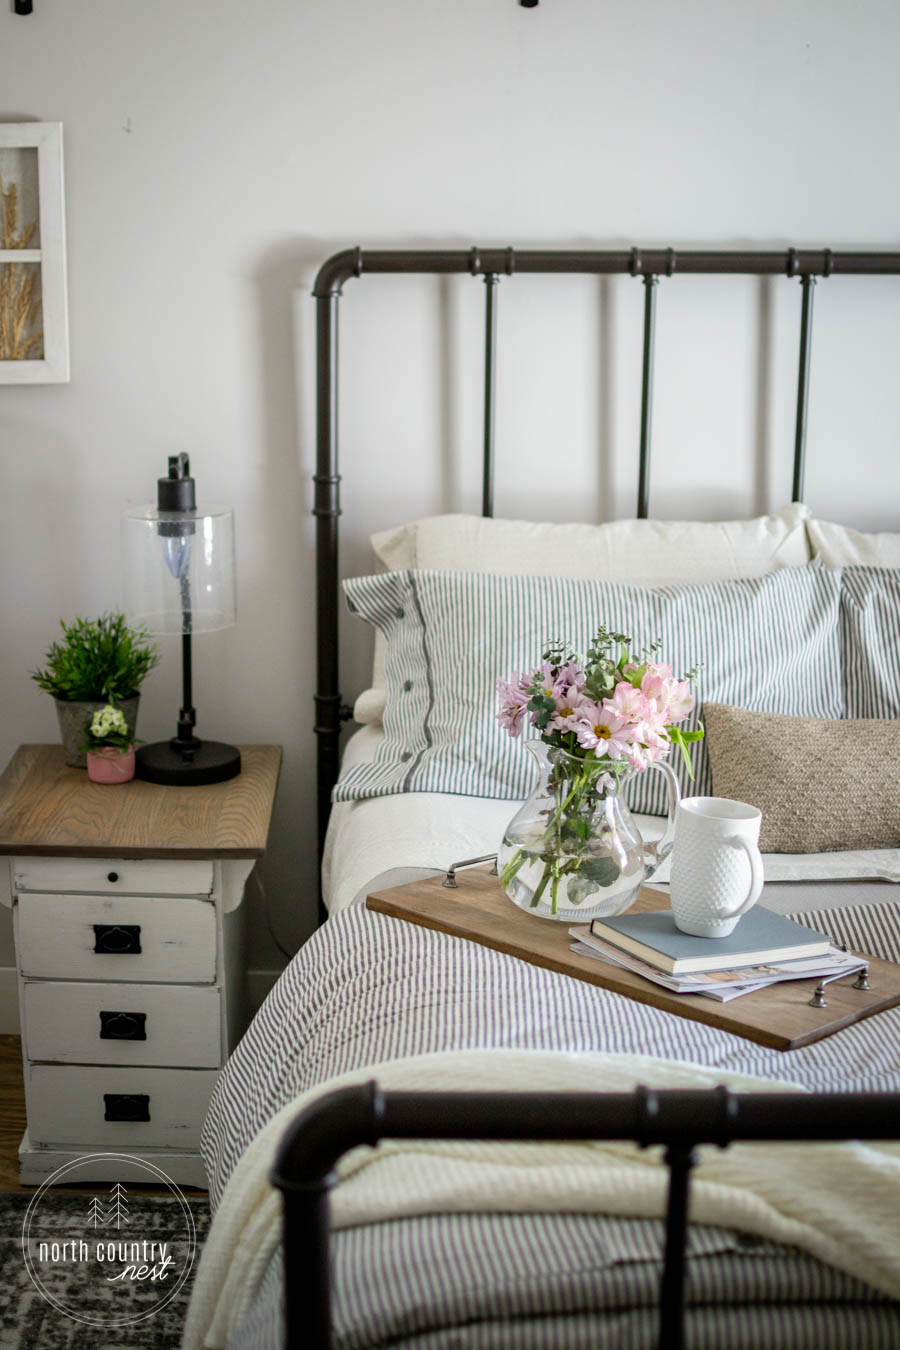 spring bedroom decor with fresh flowers